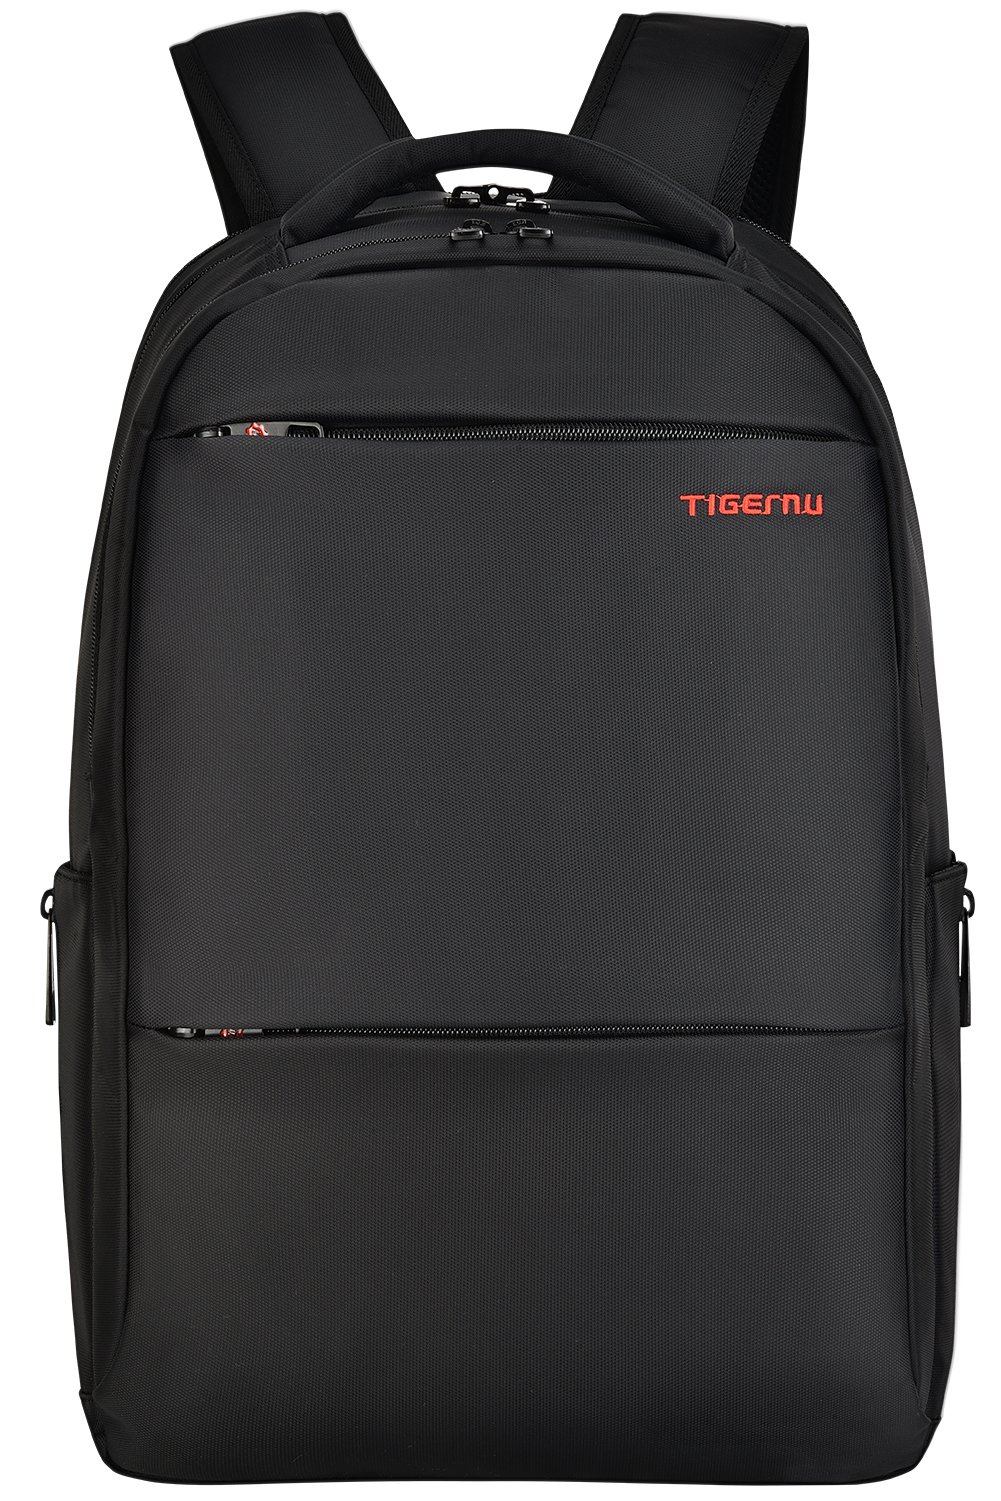 Business Laptop Backpack 17 Inch- Fenix Toulouse Handball 9a11d3bc02b09